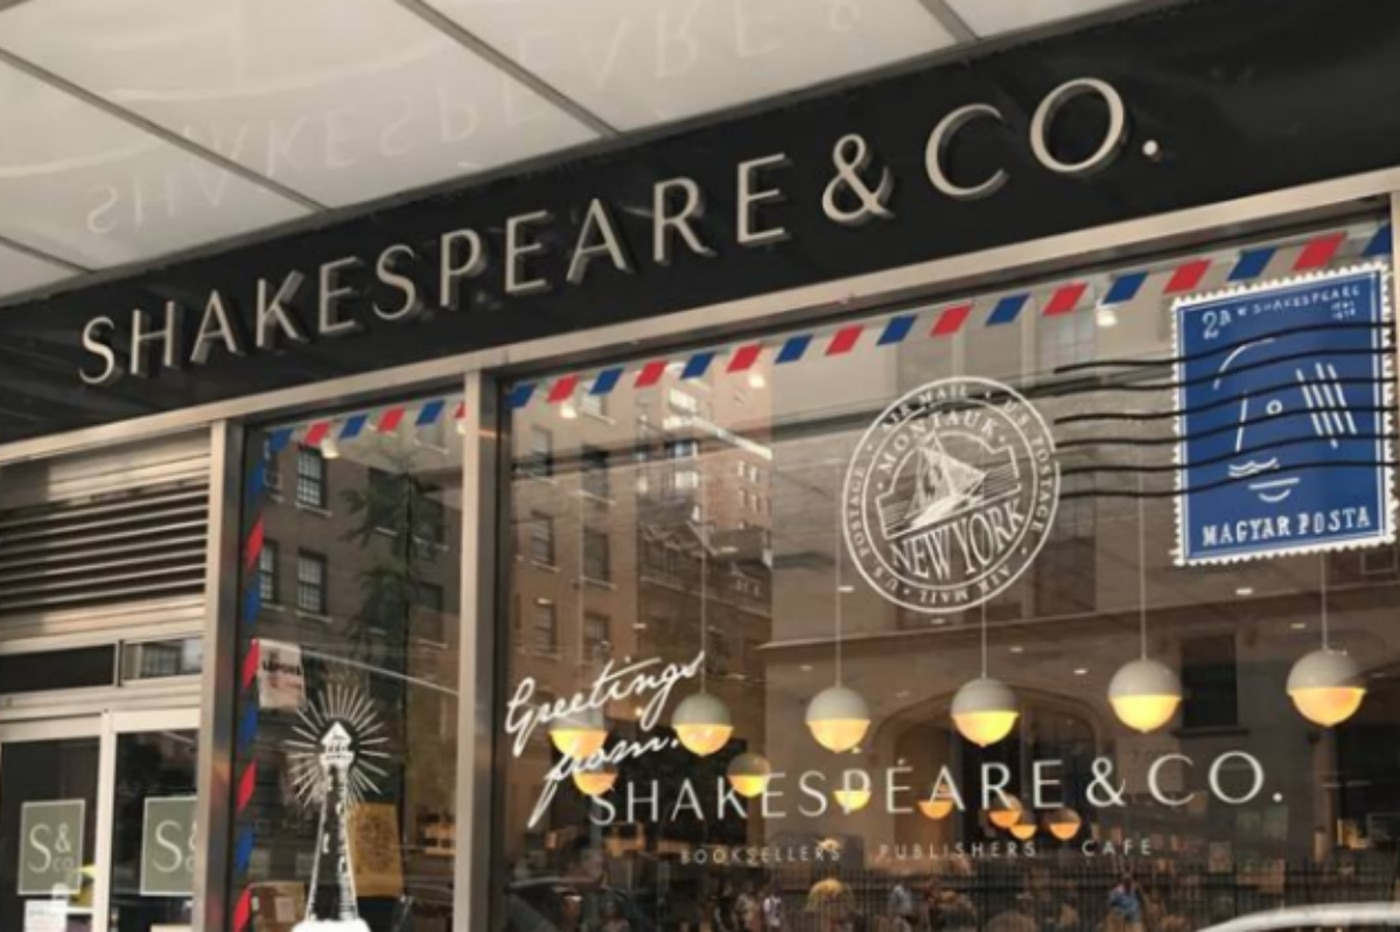 Super-bookstore/cafe/publisher Shakespeare & Co. opening in Philadelphia this summer